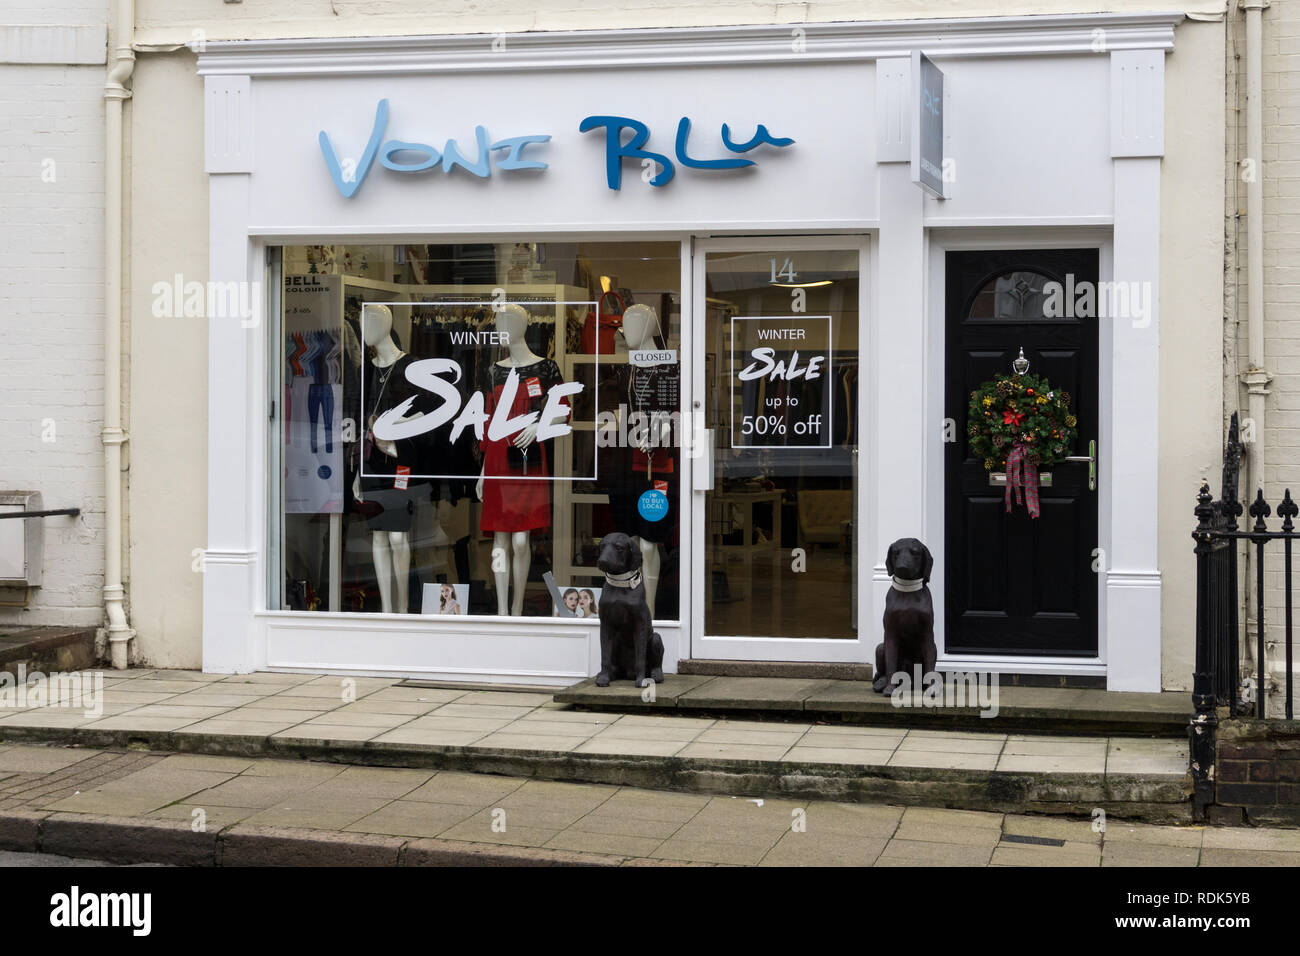 Voni Blu, a ladies fashion boutique, Northampton, UK; note the two stone dogs guarding the door. - Stock Image